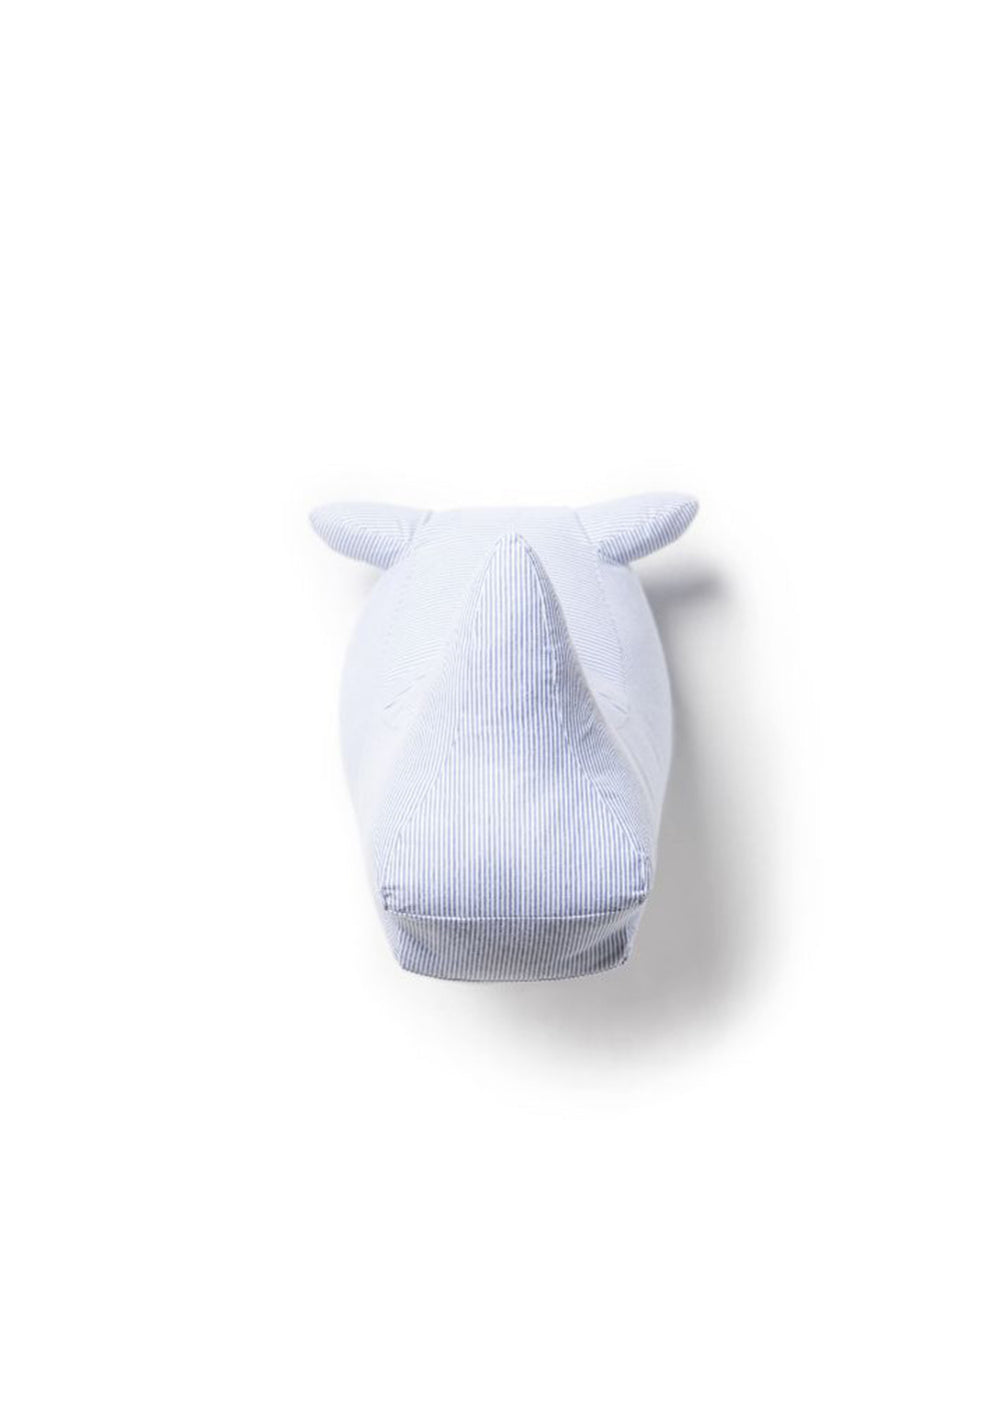 Abstract rhino white/blue Joseph